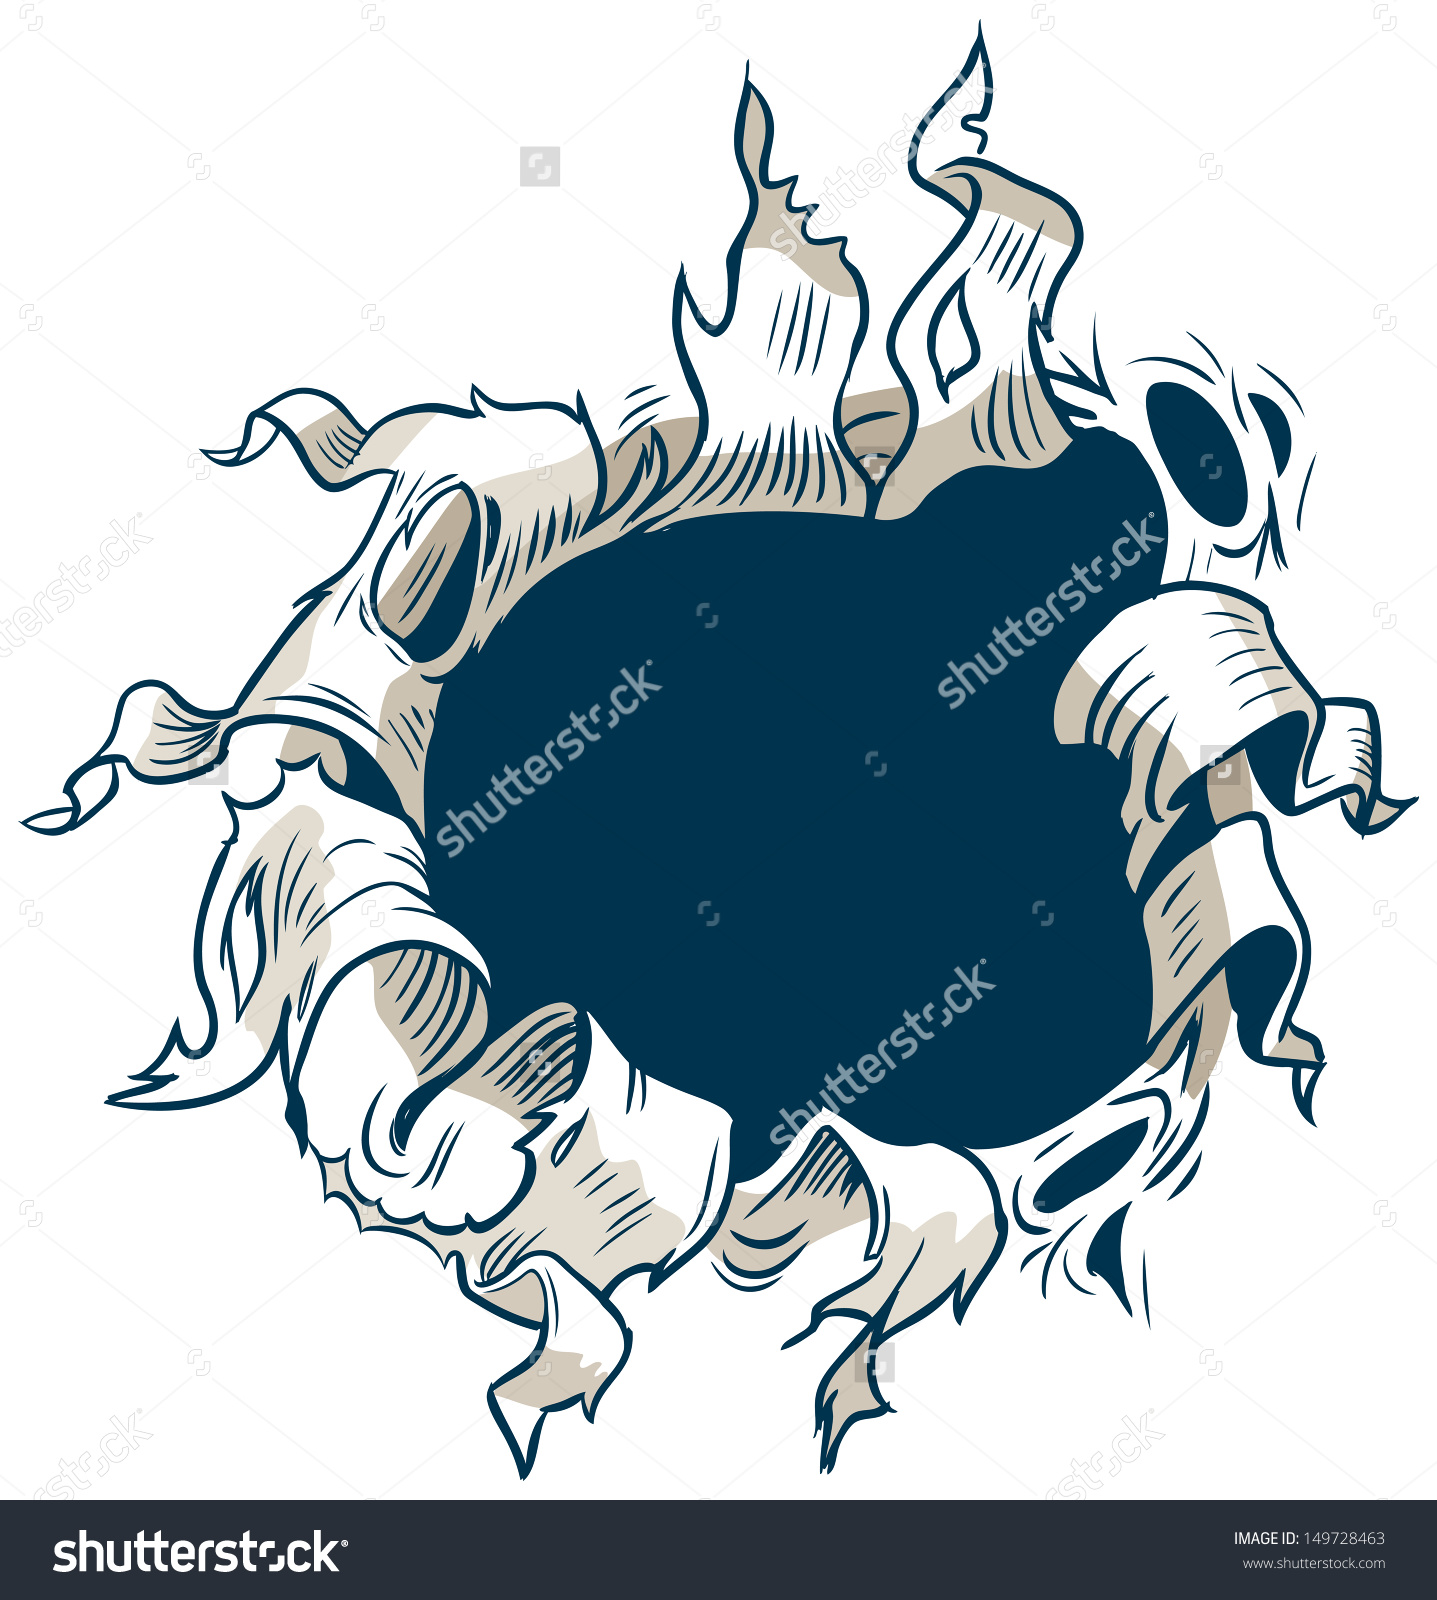 This Vector Clip Art Designed Appear Stock Vector 149728463.